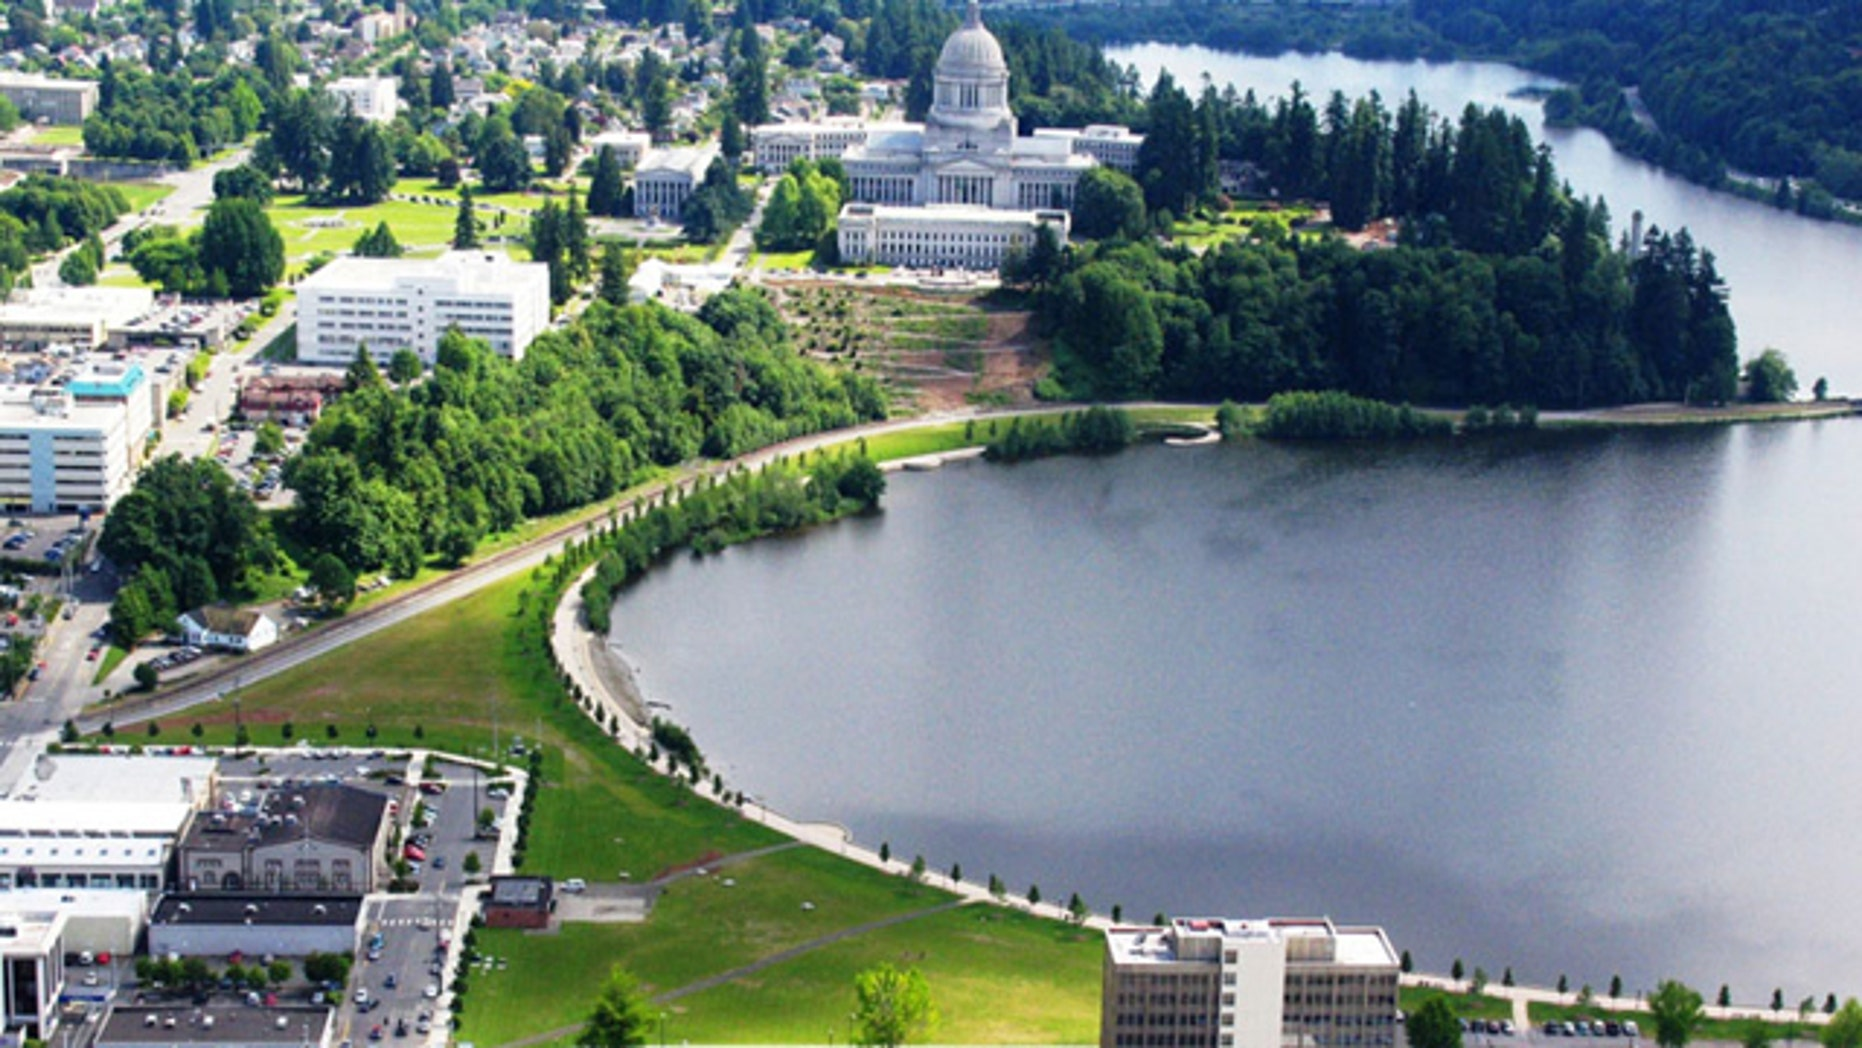 Heritage Park is a 24-acre state-owned park adjacent to the State Capitol Campus, Capitol Lake and downtown Olympia.